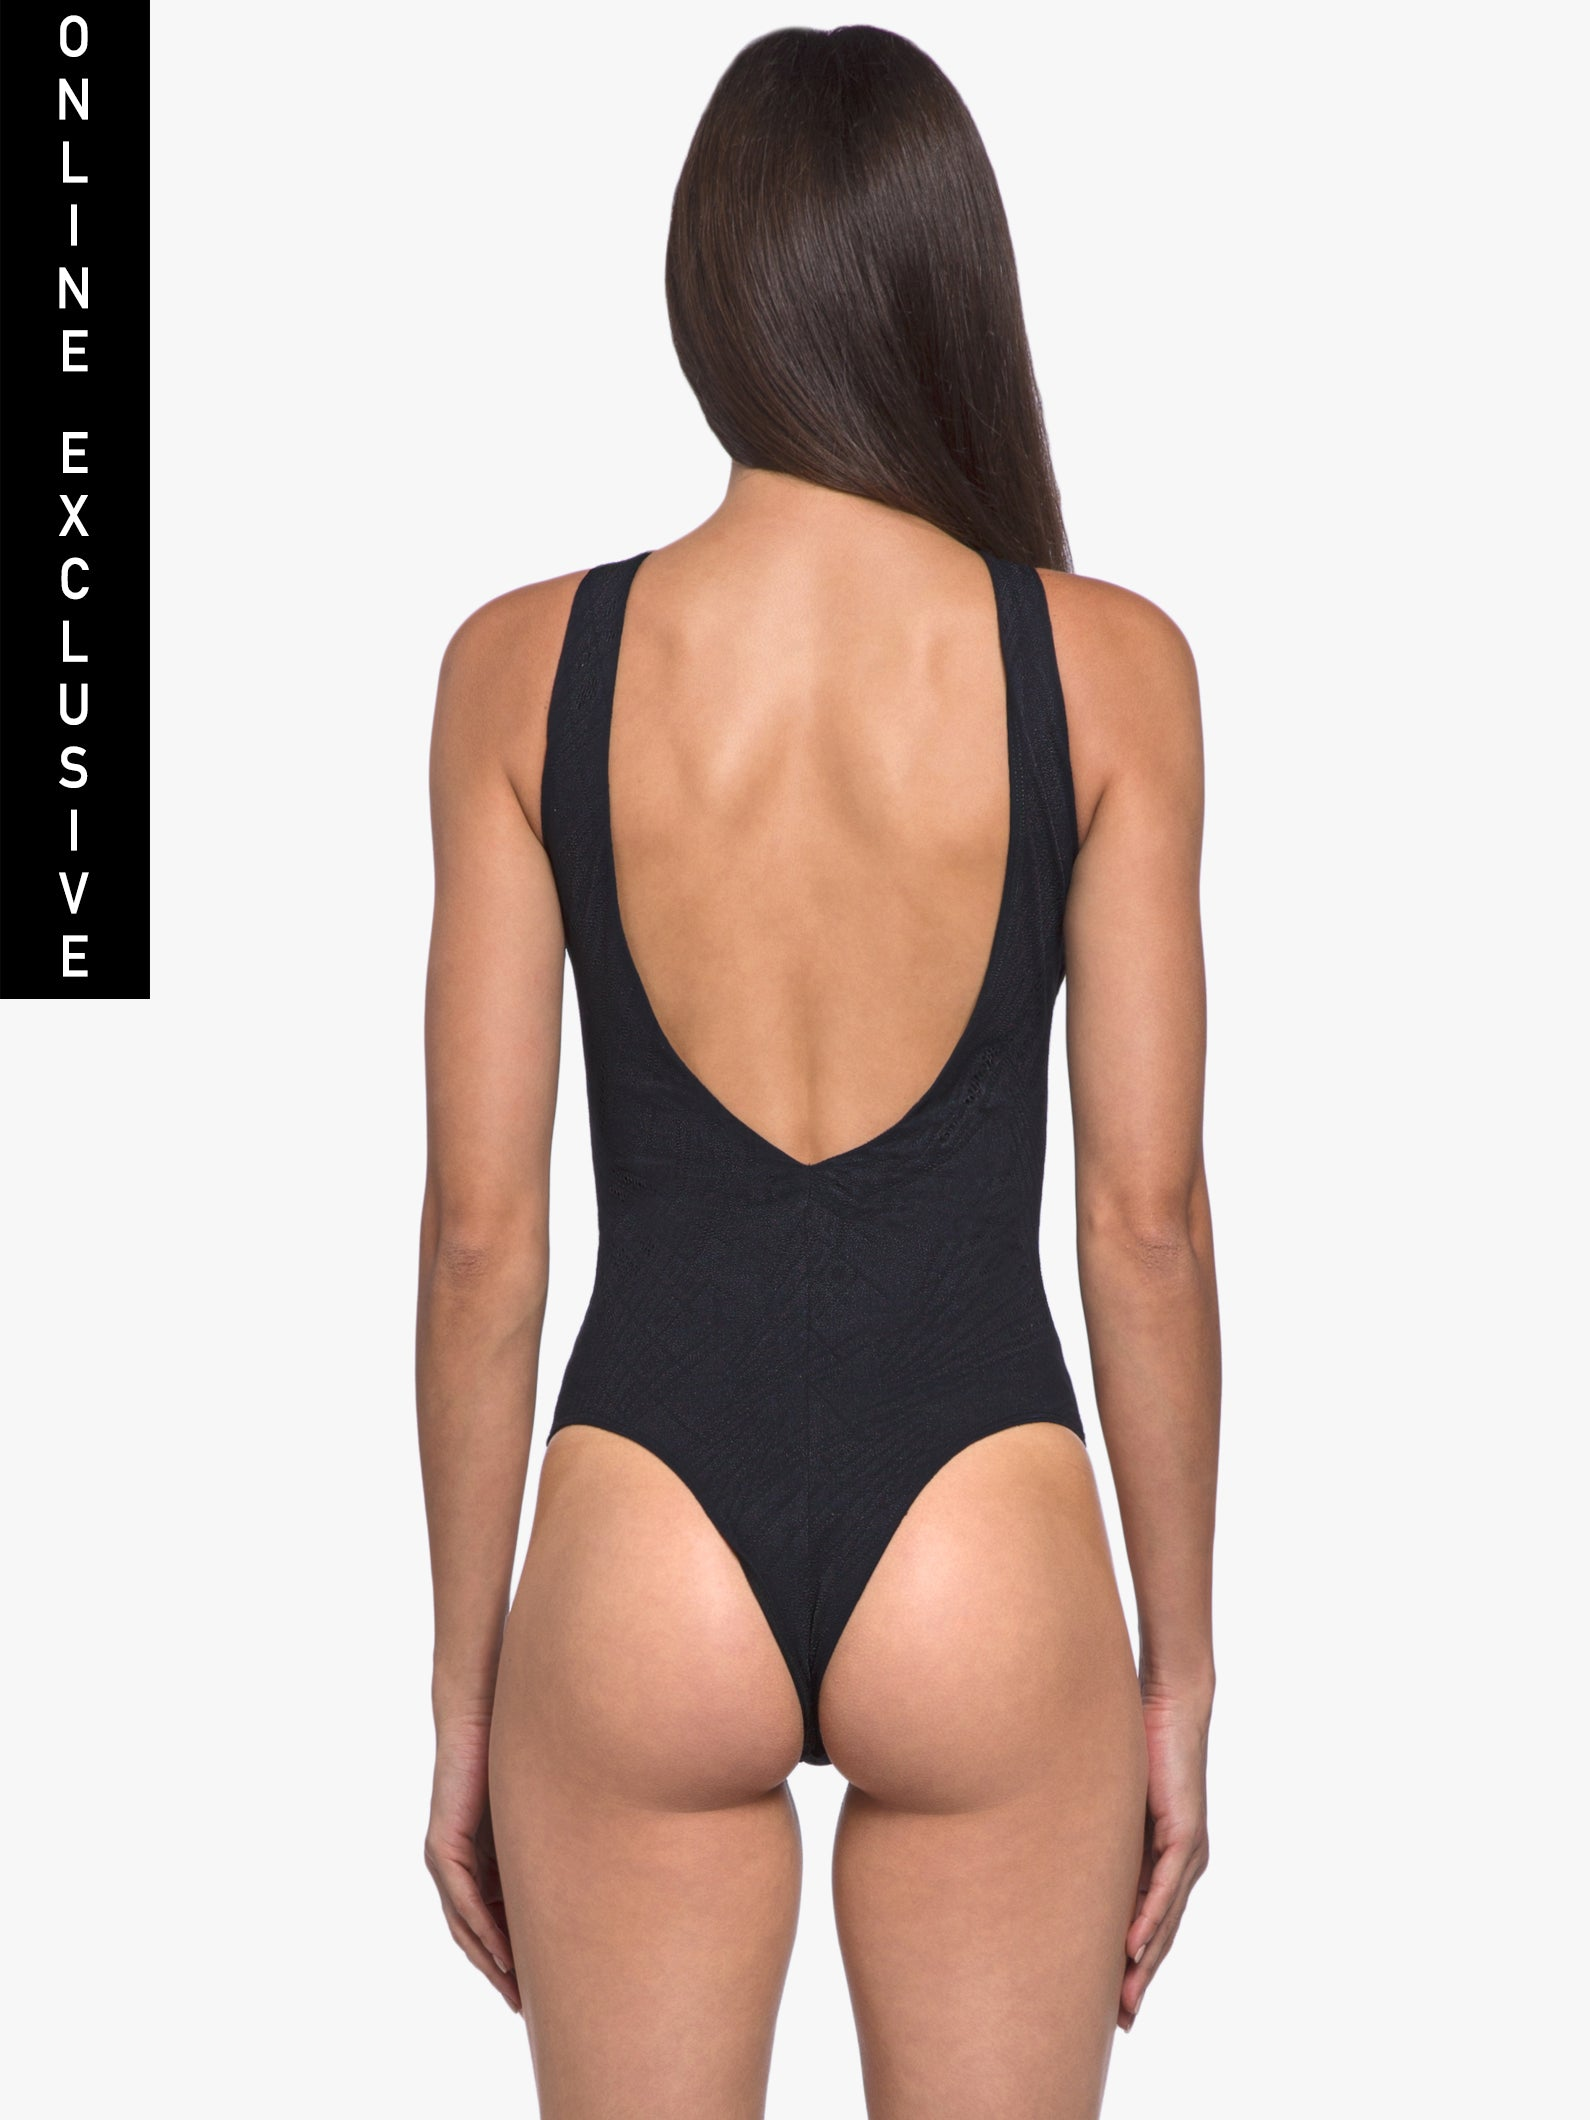 Vague Maxen Bodysuit - Black